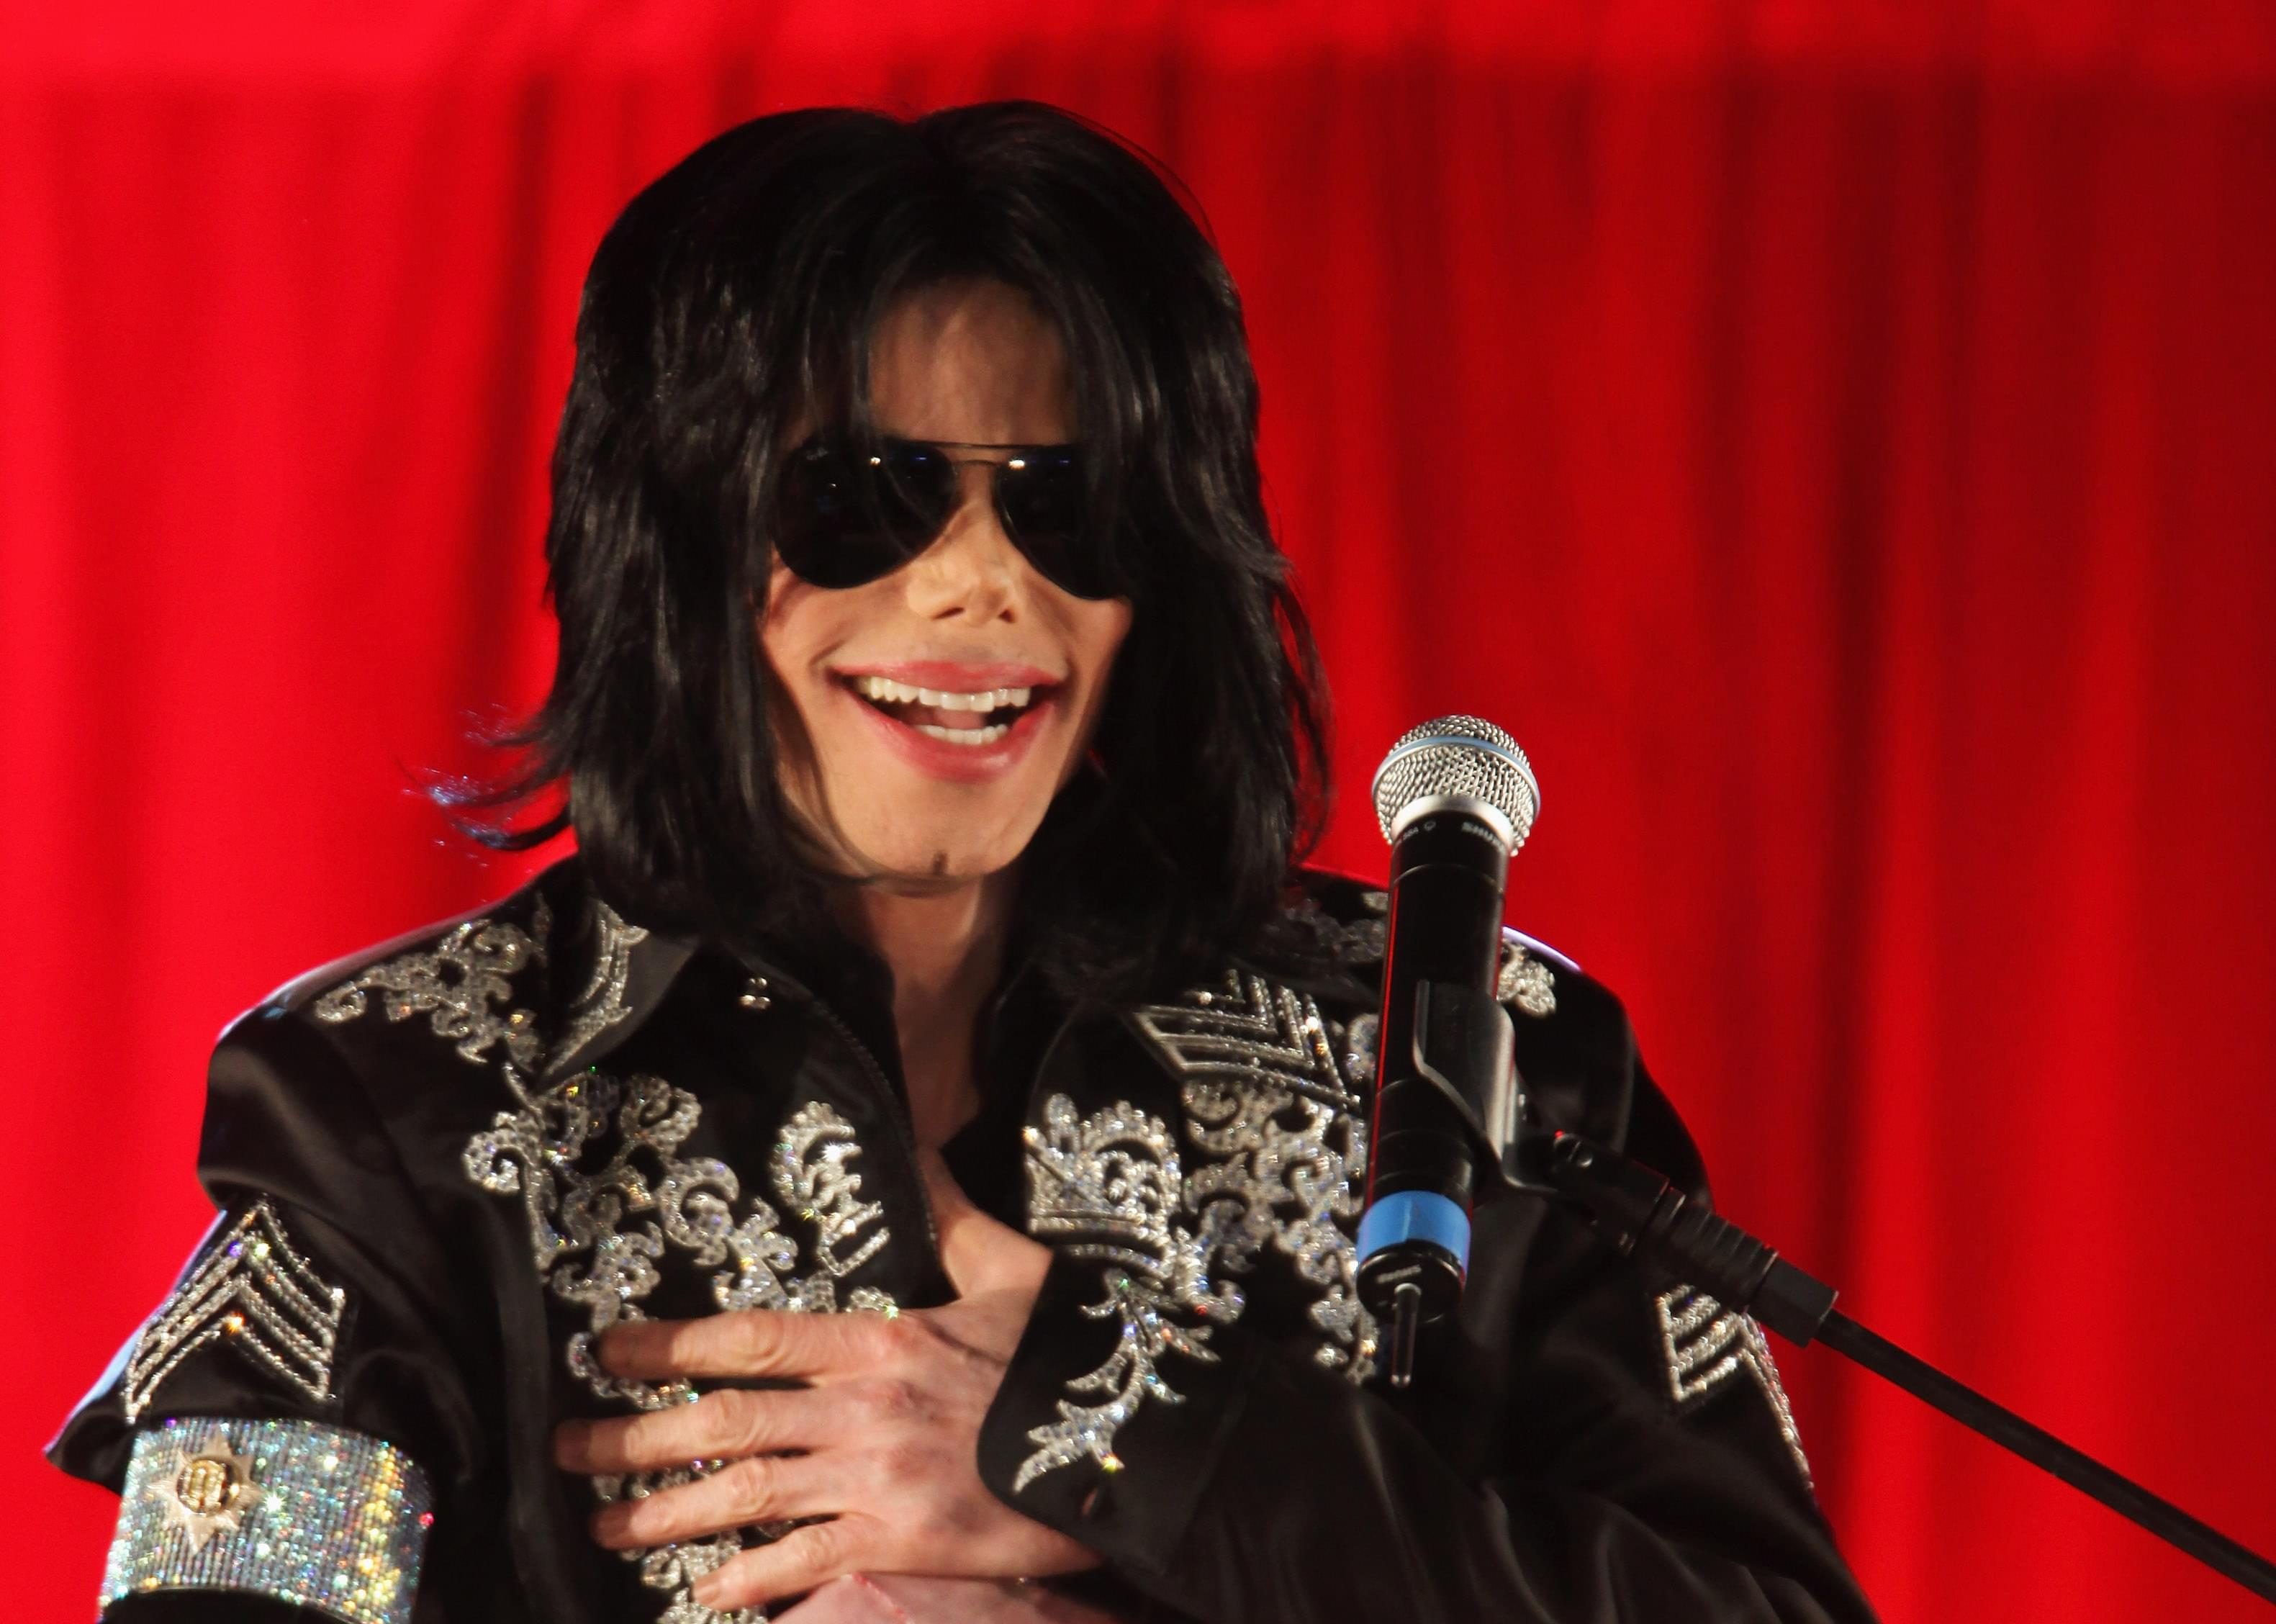 Court Rules: Sony Music Allowed to Sell Michael Jackson Songs Even If They're Fake